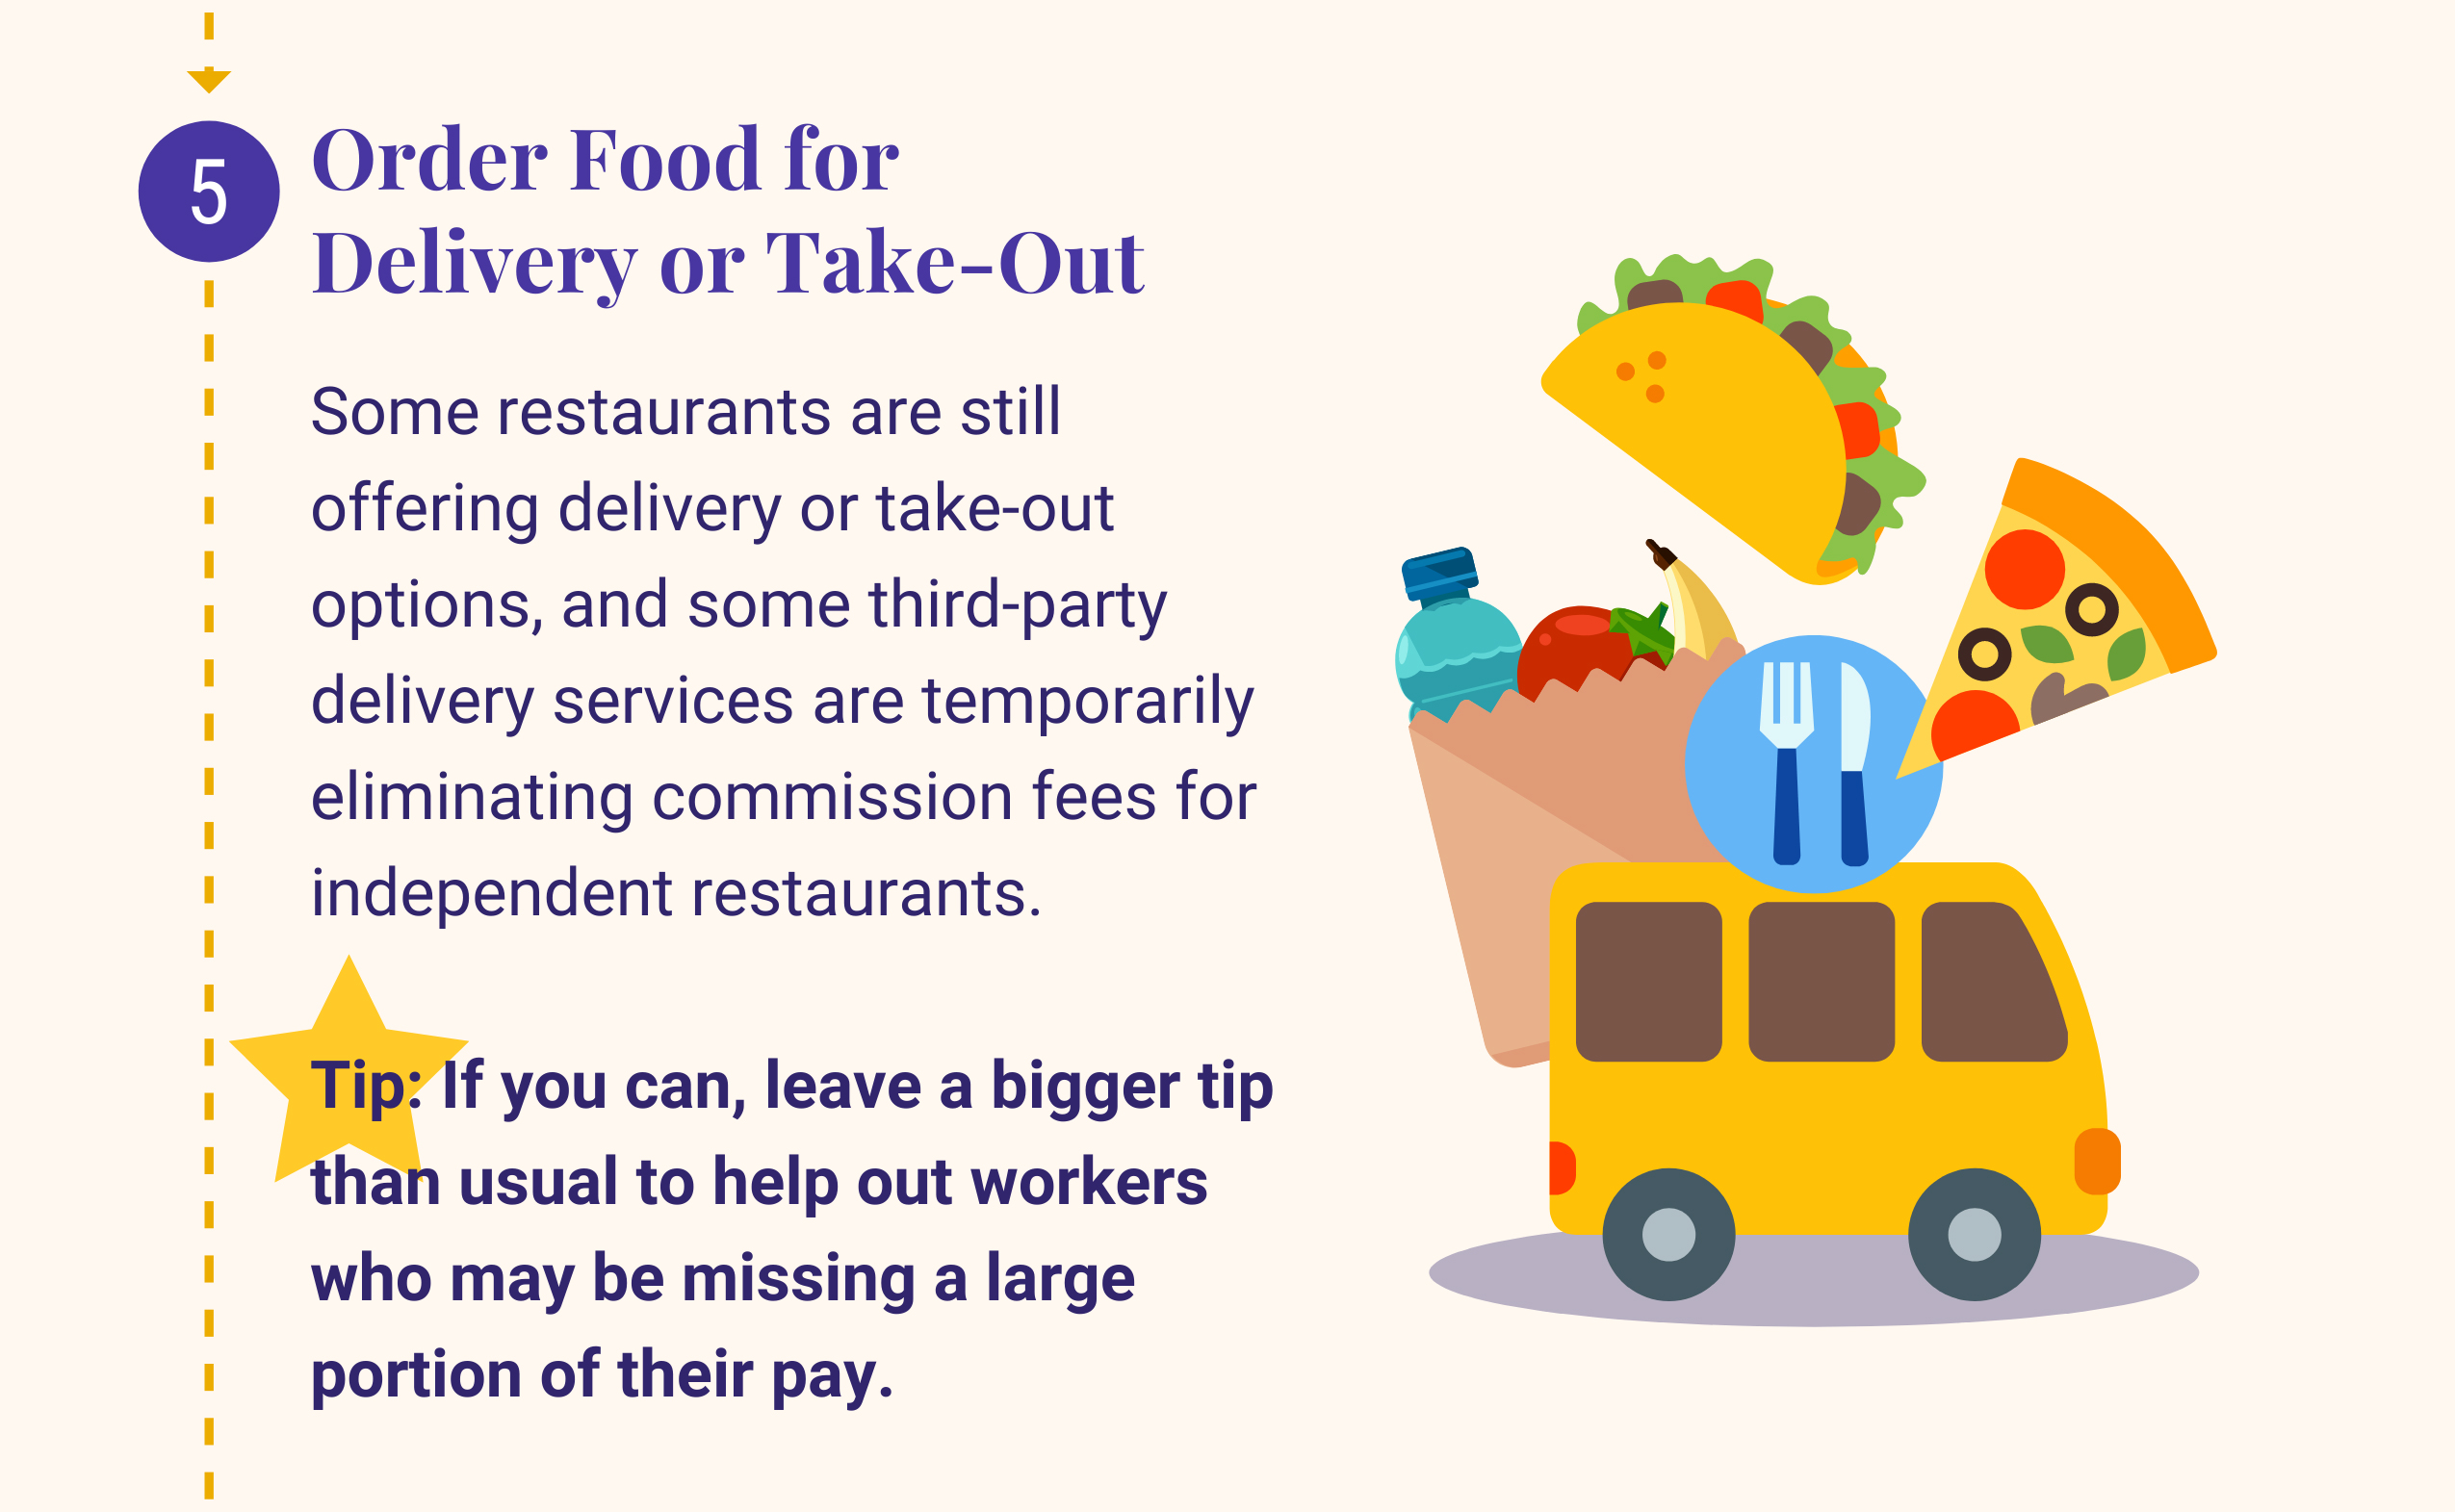 5: Order Food for Delivery or Take-Out. Some restaurants are still offering delivery or take-out options, and some third-party delivery services are temporarily eliminating commission fees for independent restaurants. Tip: If you can, leave a bigger tip than usual to help out workers who may be missing a large portion of their pay.